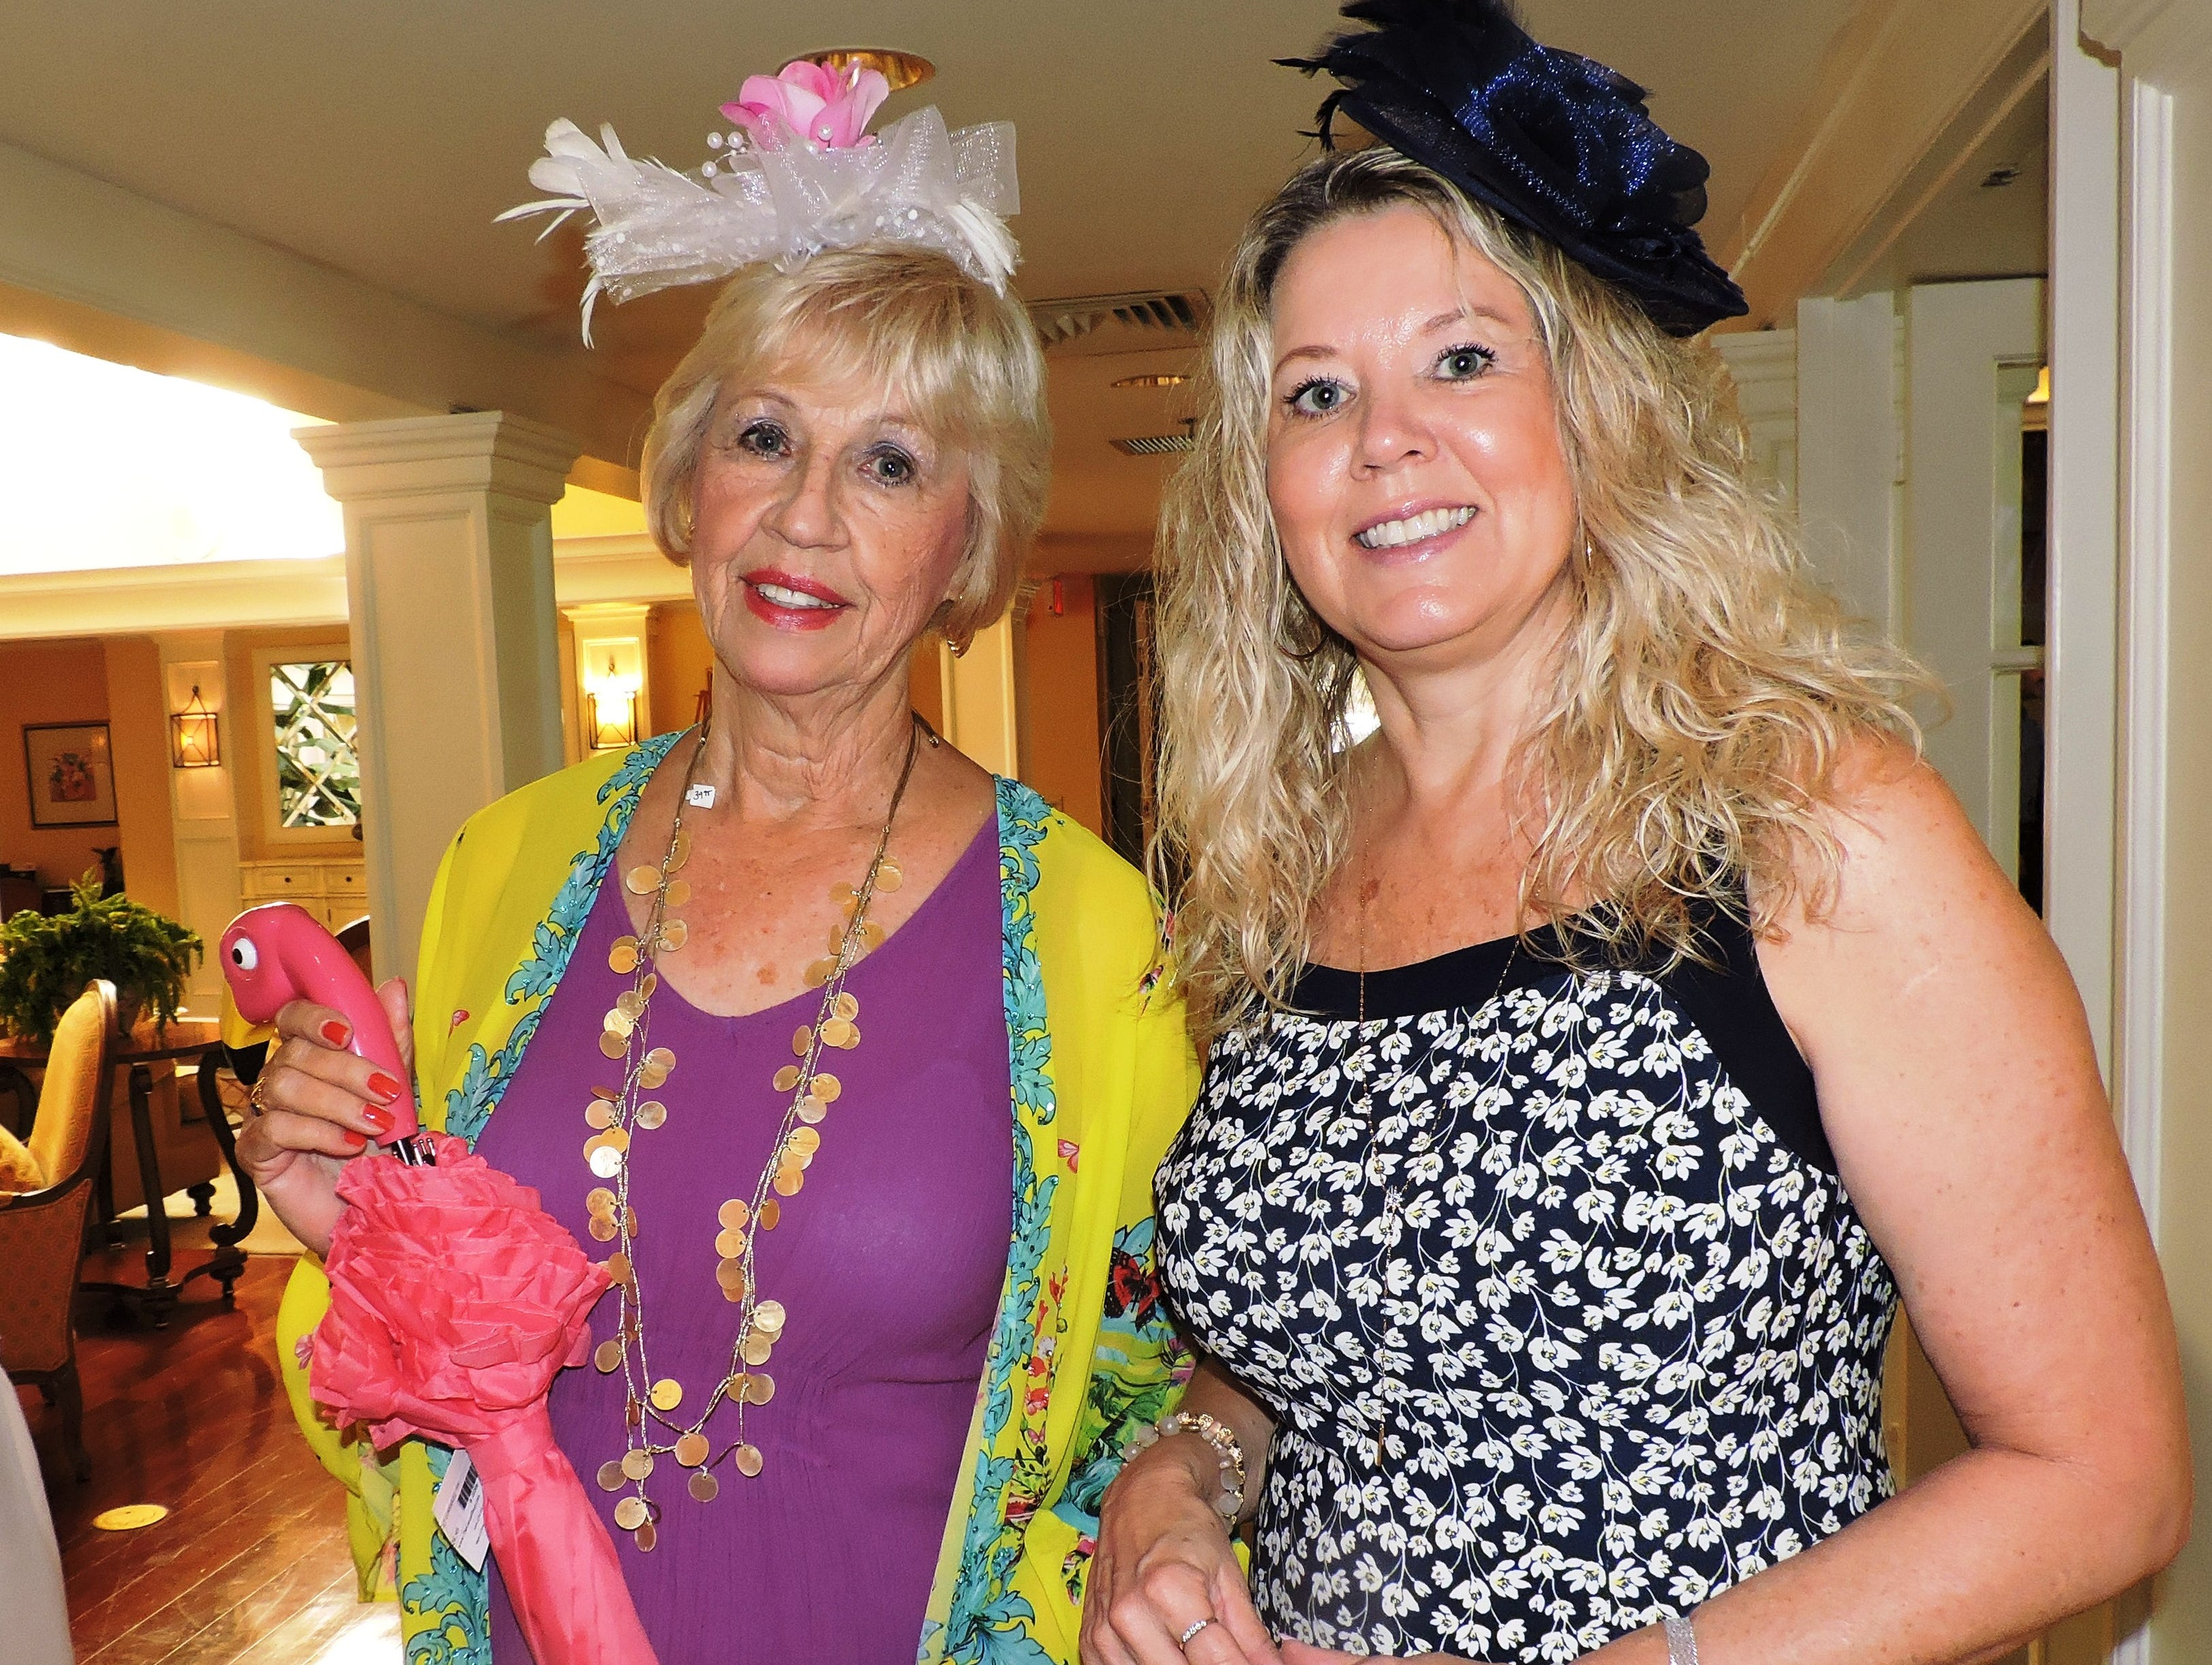 Susan Clifford, left, and Angela Beausoliel at Woman's Club of Stuart's annual Food, Friends and Fashion Show Feb. 23 at Mariner Sands Country Club in Stuart.